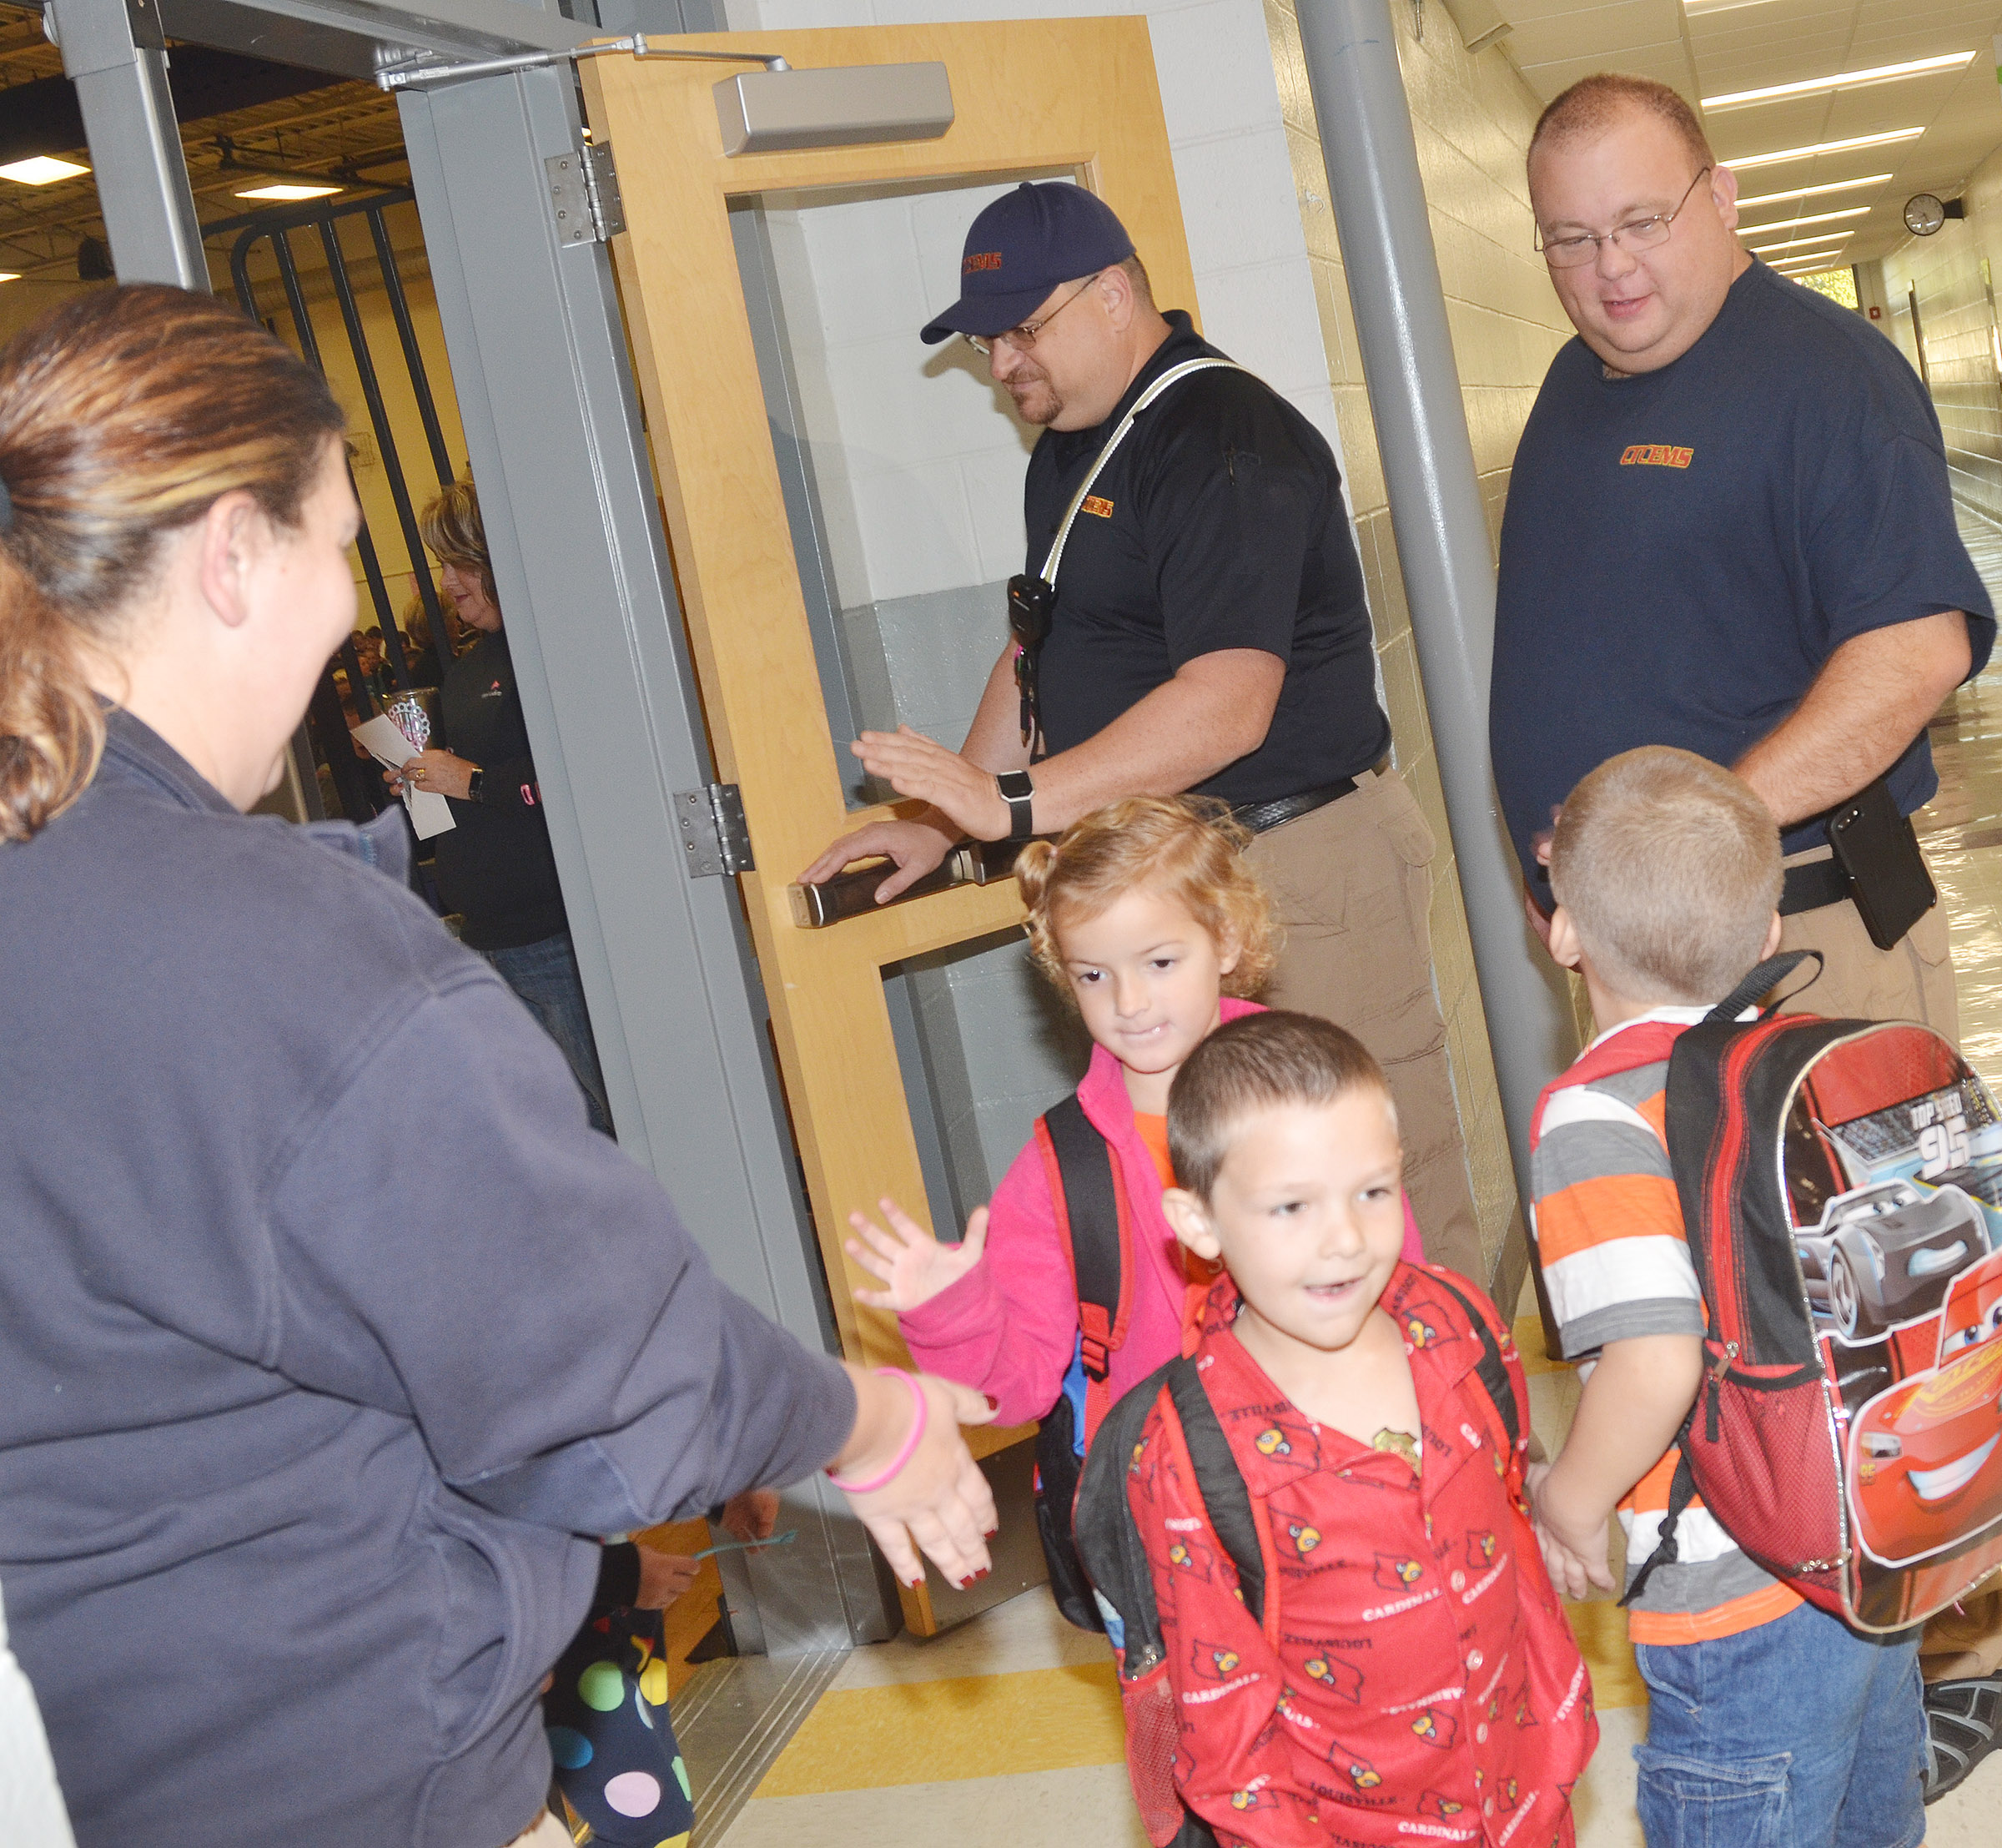 Campbellsville/Taylor County EMS personnel, from left, Jackie Fair, Steve Marrs and Adam England greet and high-five CES students.